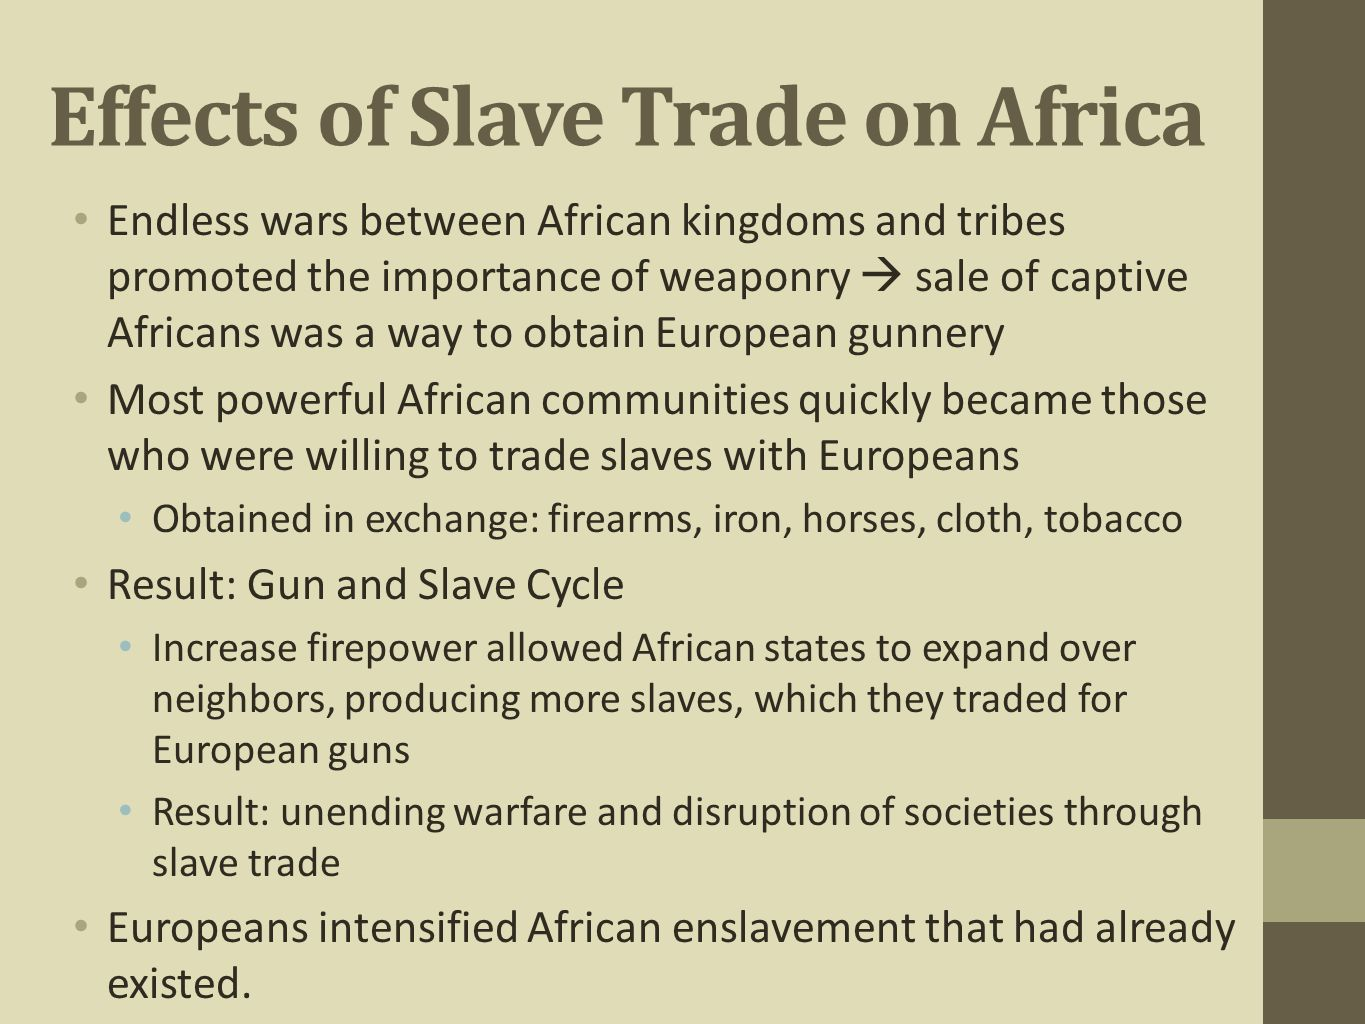 effects of slave trade